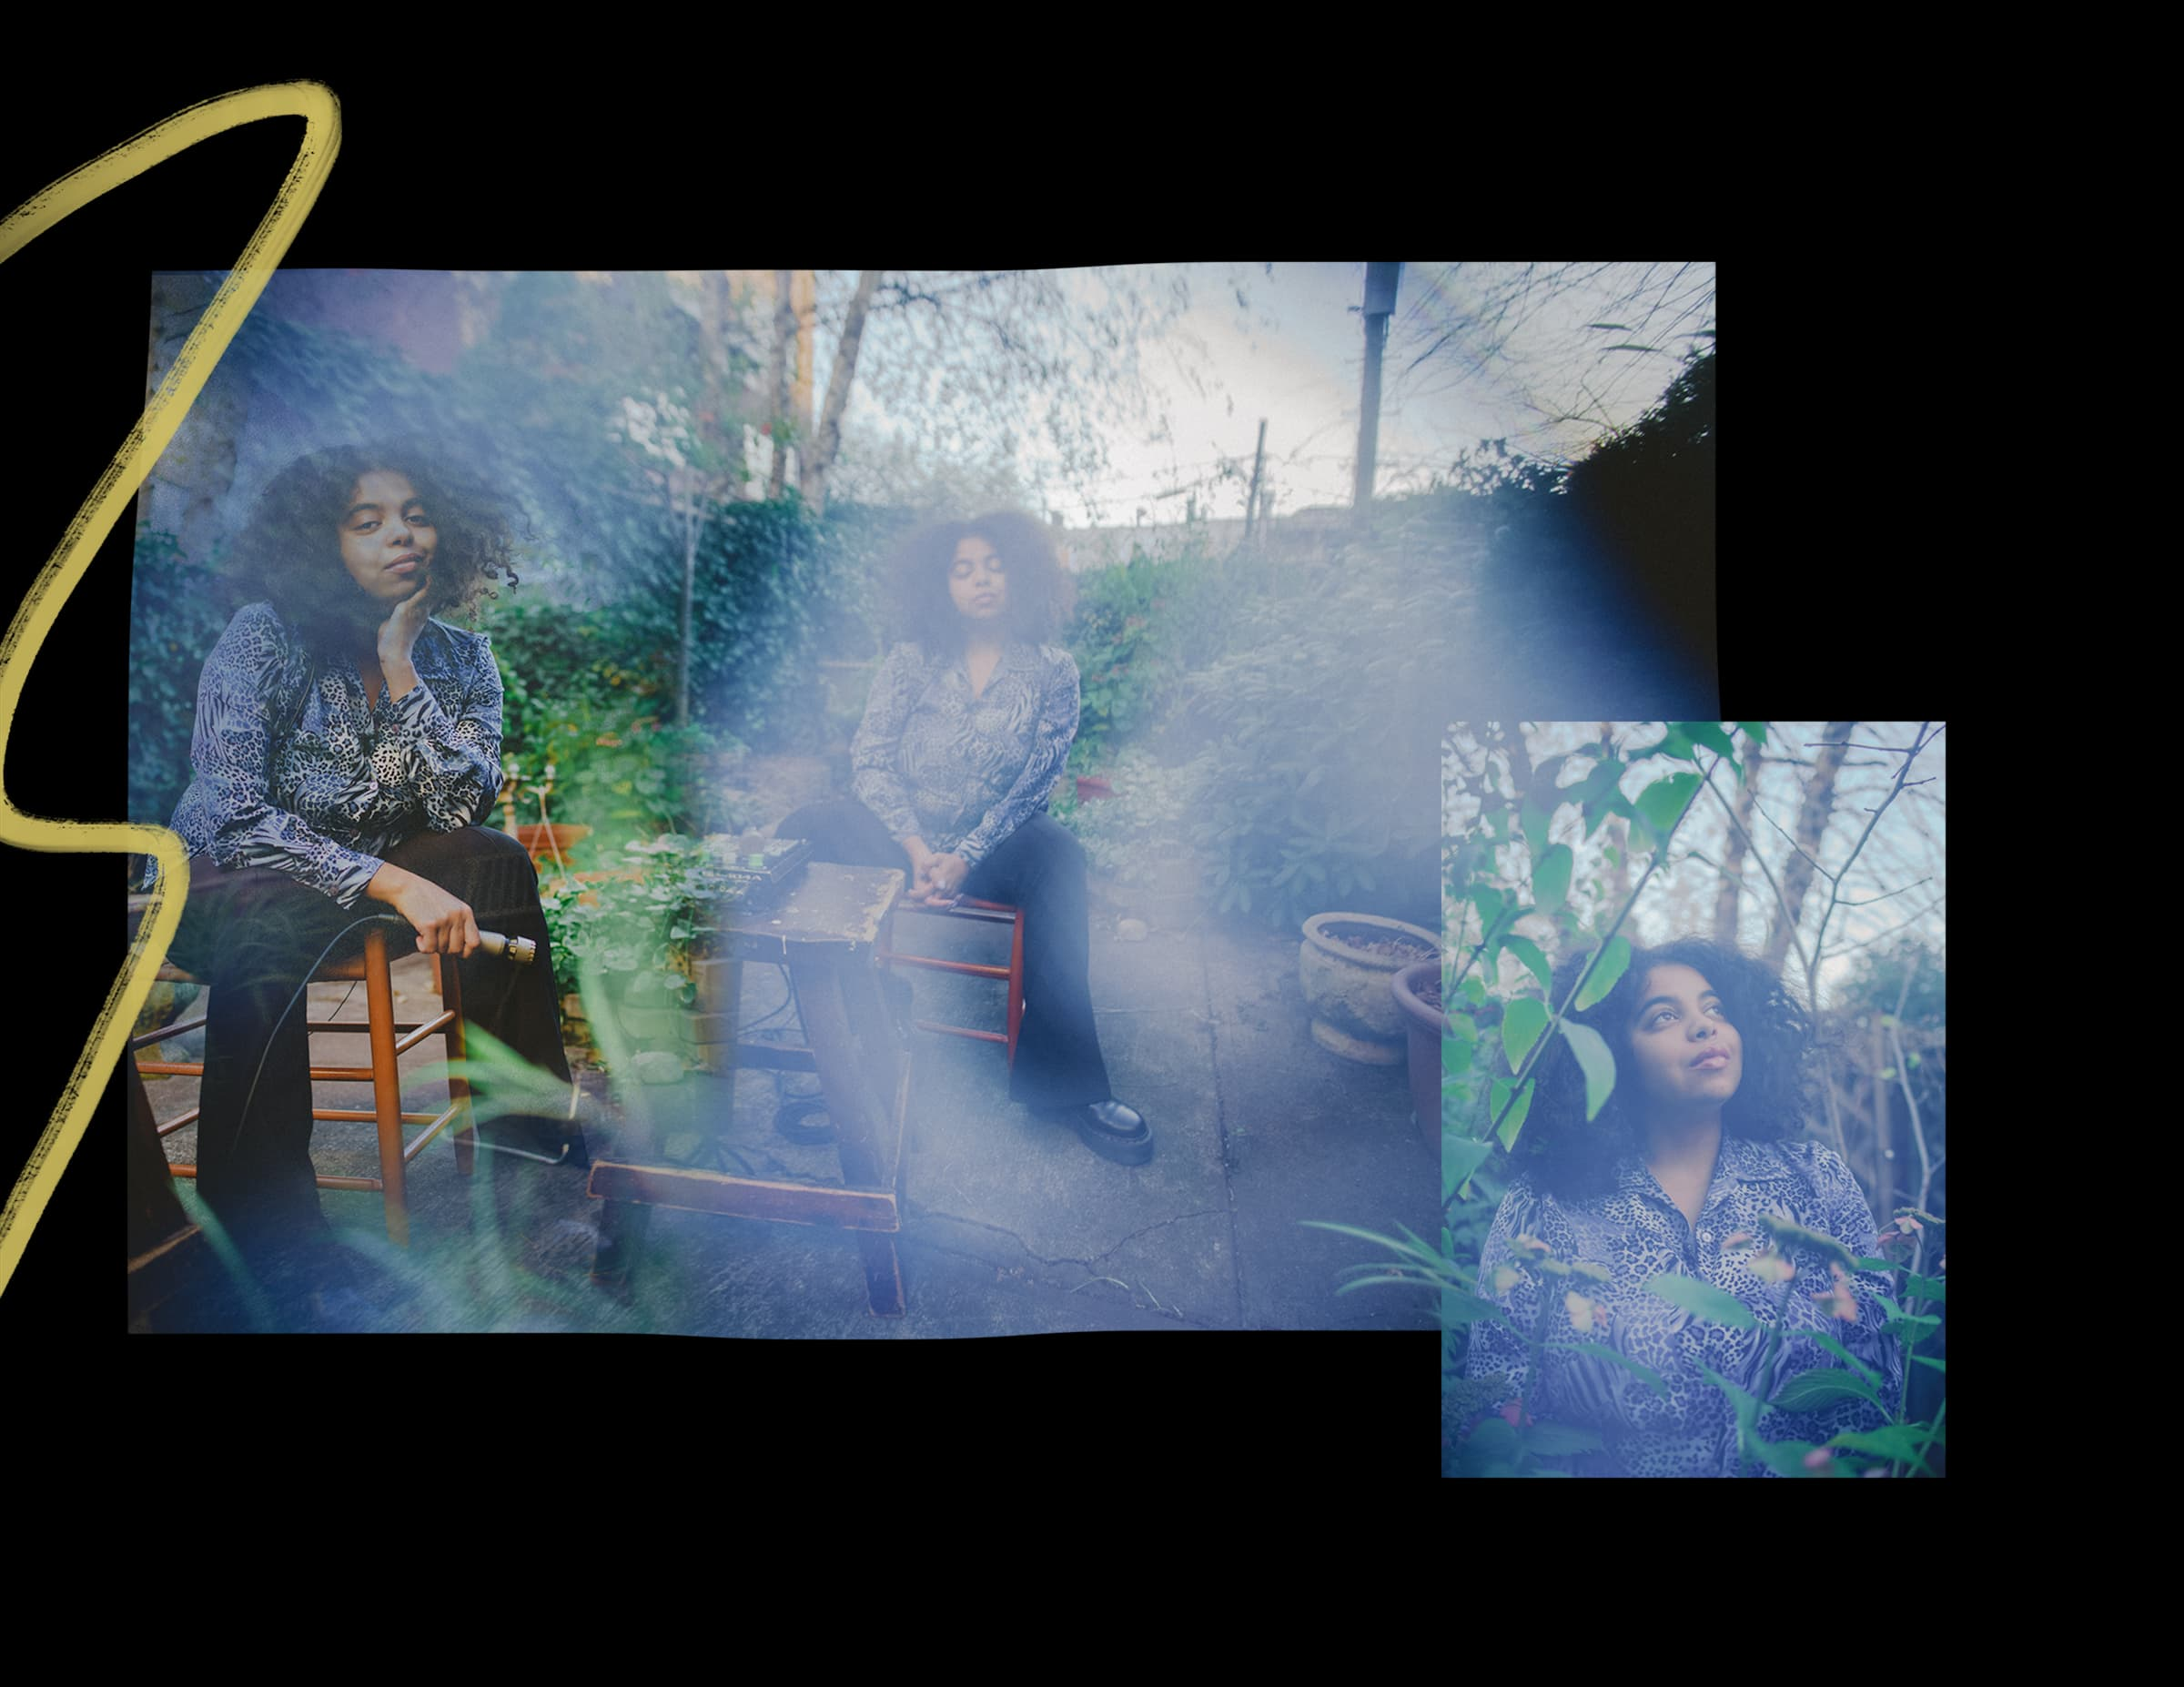 A collage of photos showing duendita with her recording equipment in her backyard.